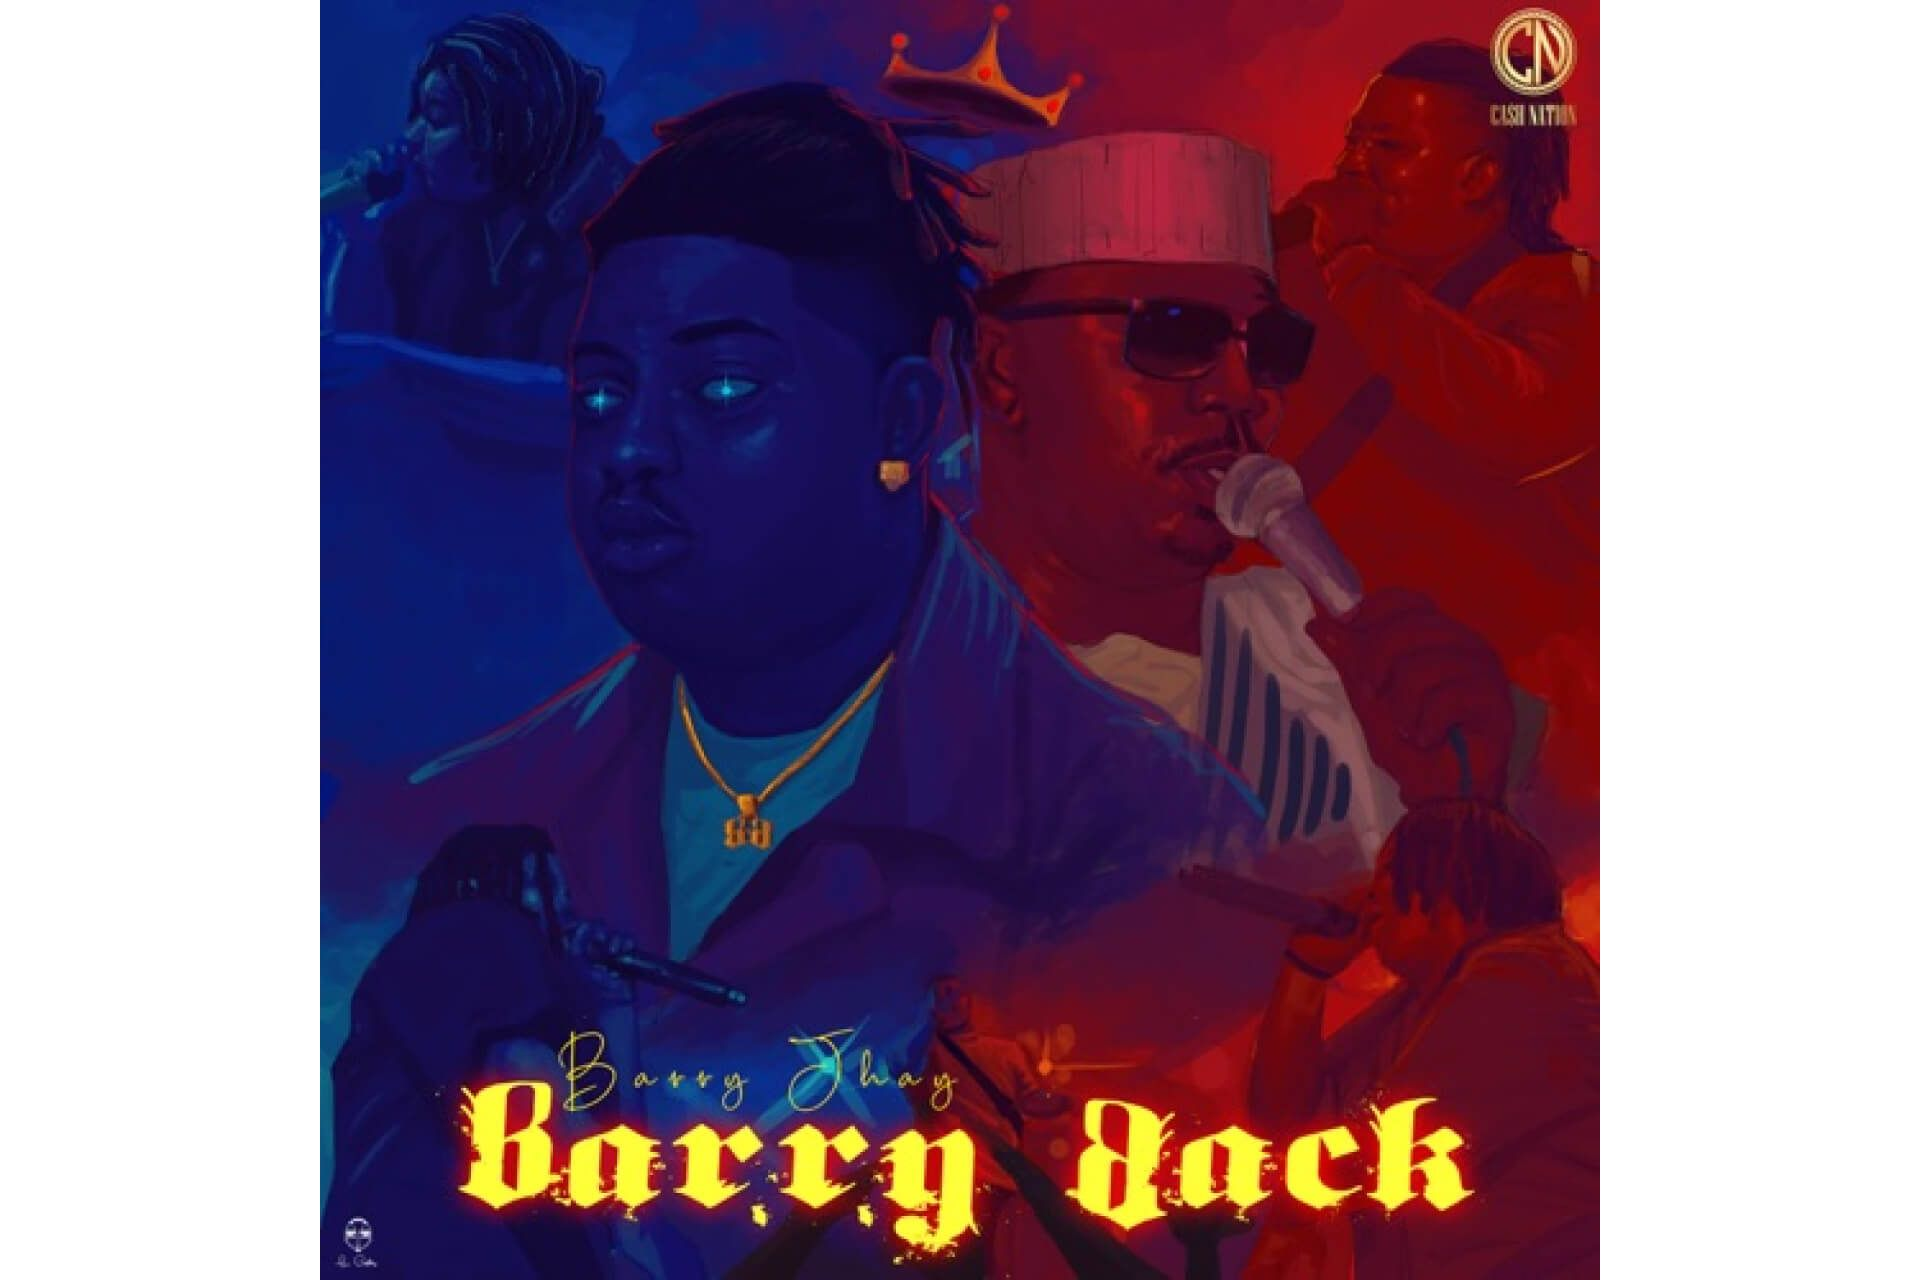 Download Barry Jhay S Debut Ep The Barryback Ep Mp3 Video In 2020 Latest Music Videos Music Download African Music